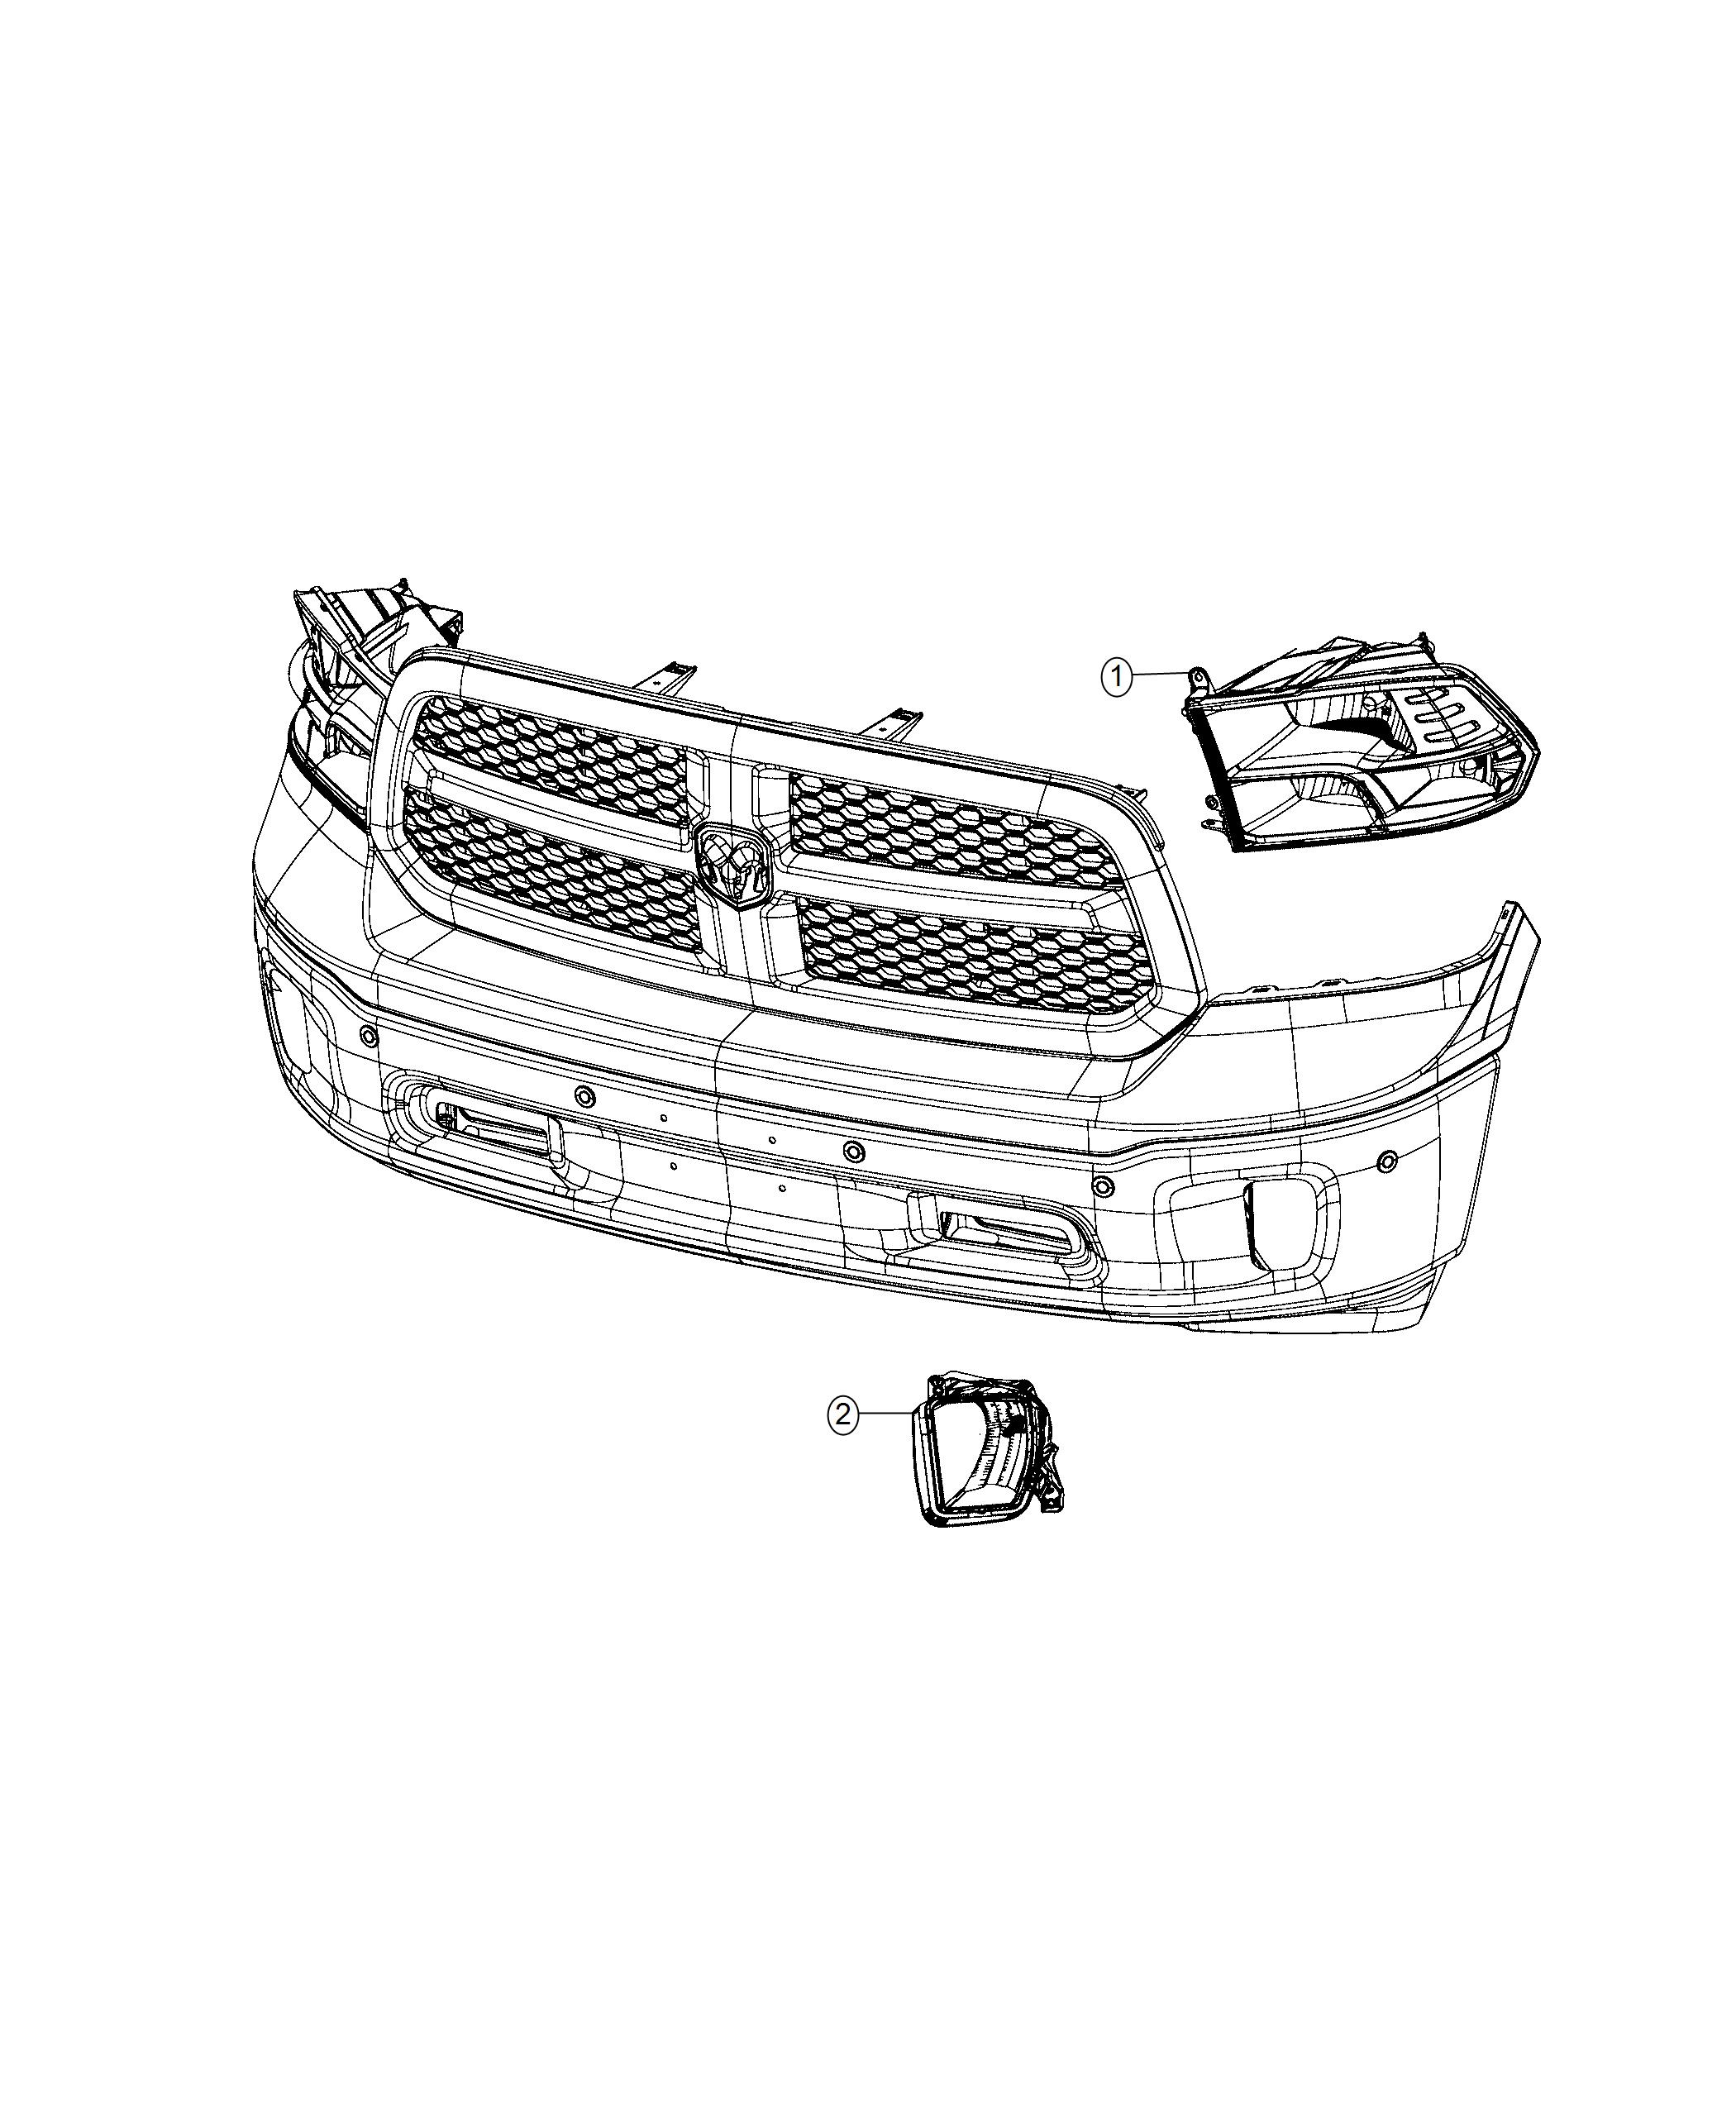 Ram 1500 Lamp. Used for: headlamp park and turn. Left